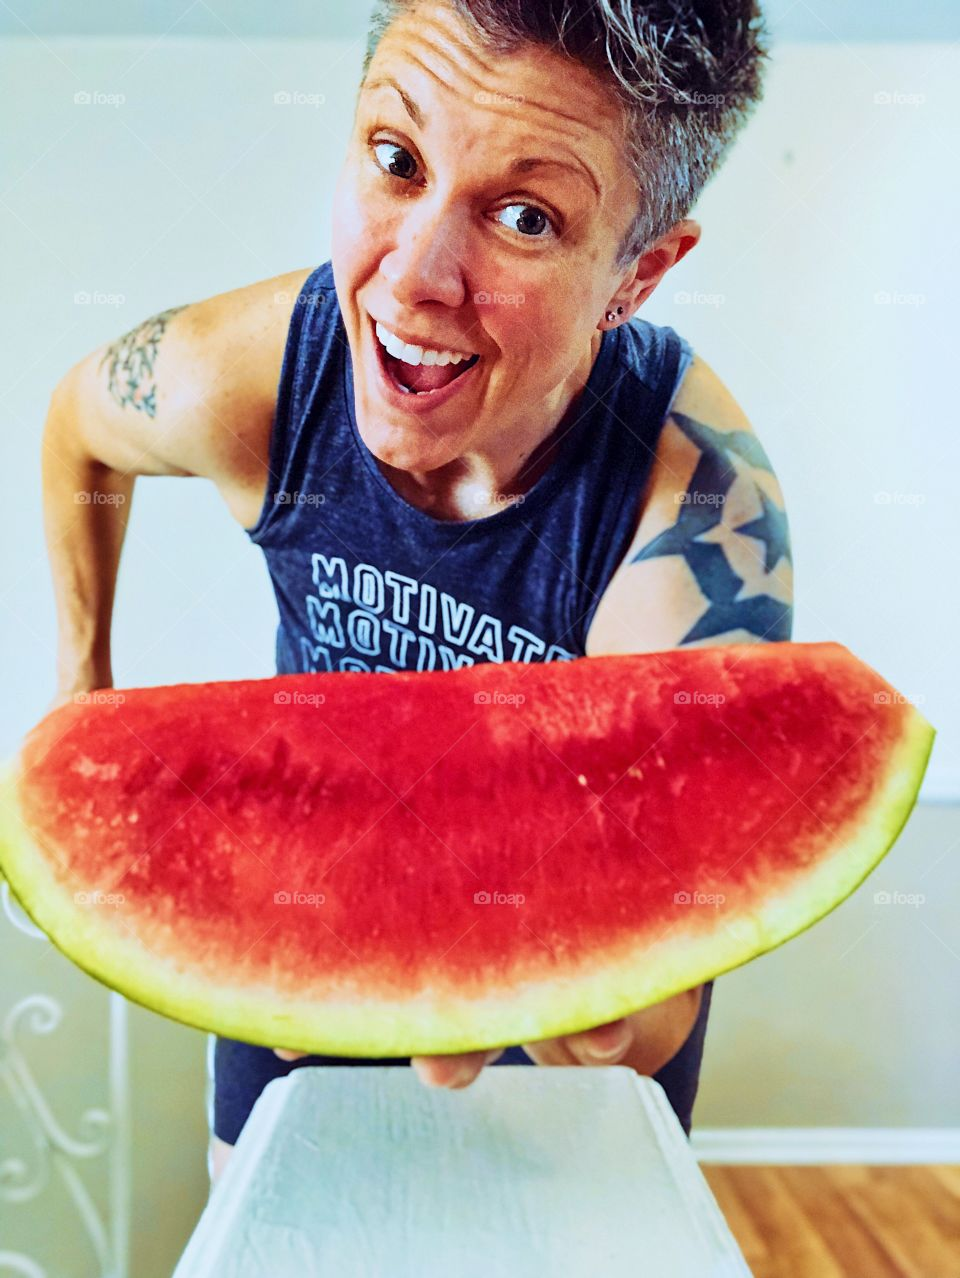 Woman With Large Watermelon, Funny Girl Portrait, Farm Fresh Fruits, Summertime Fruits, Serving Watermelon